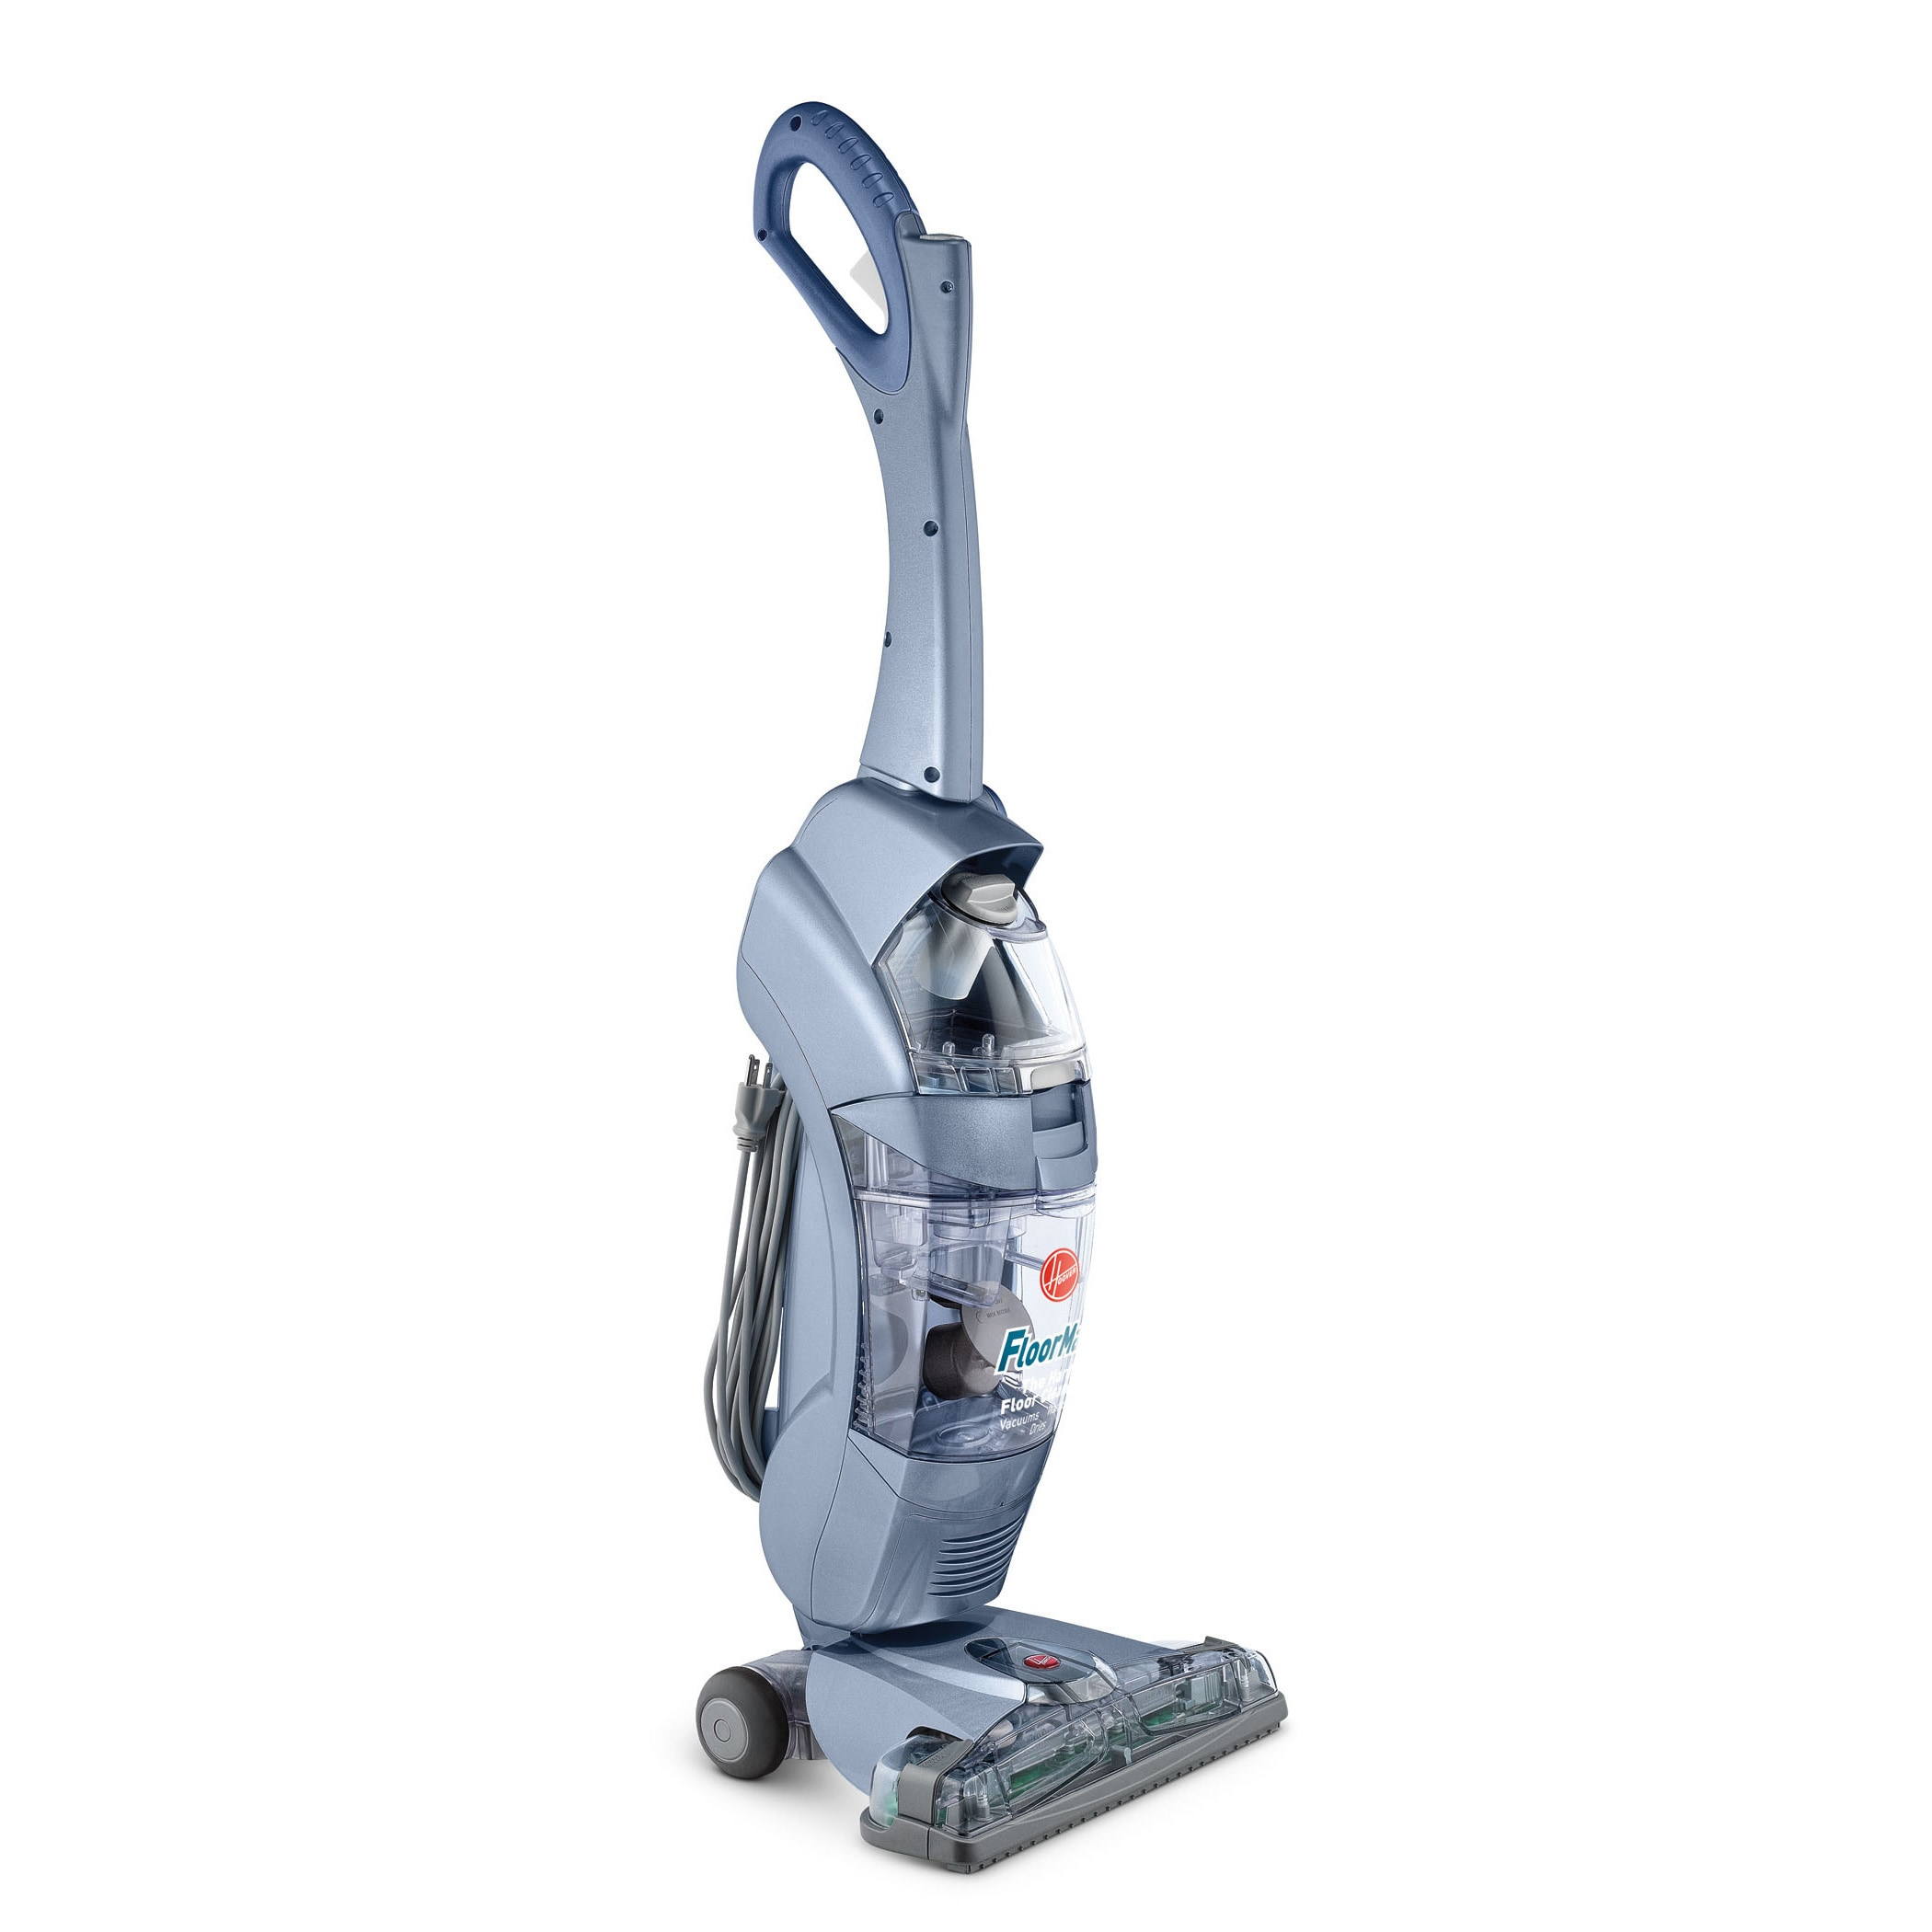 Hoover FH40010B 'Floormate' Hard Floor Cleaner, Blue wash